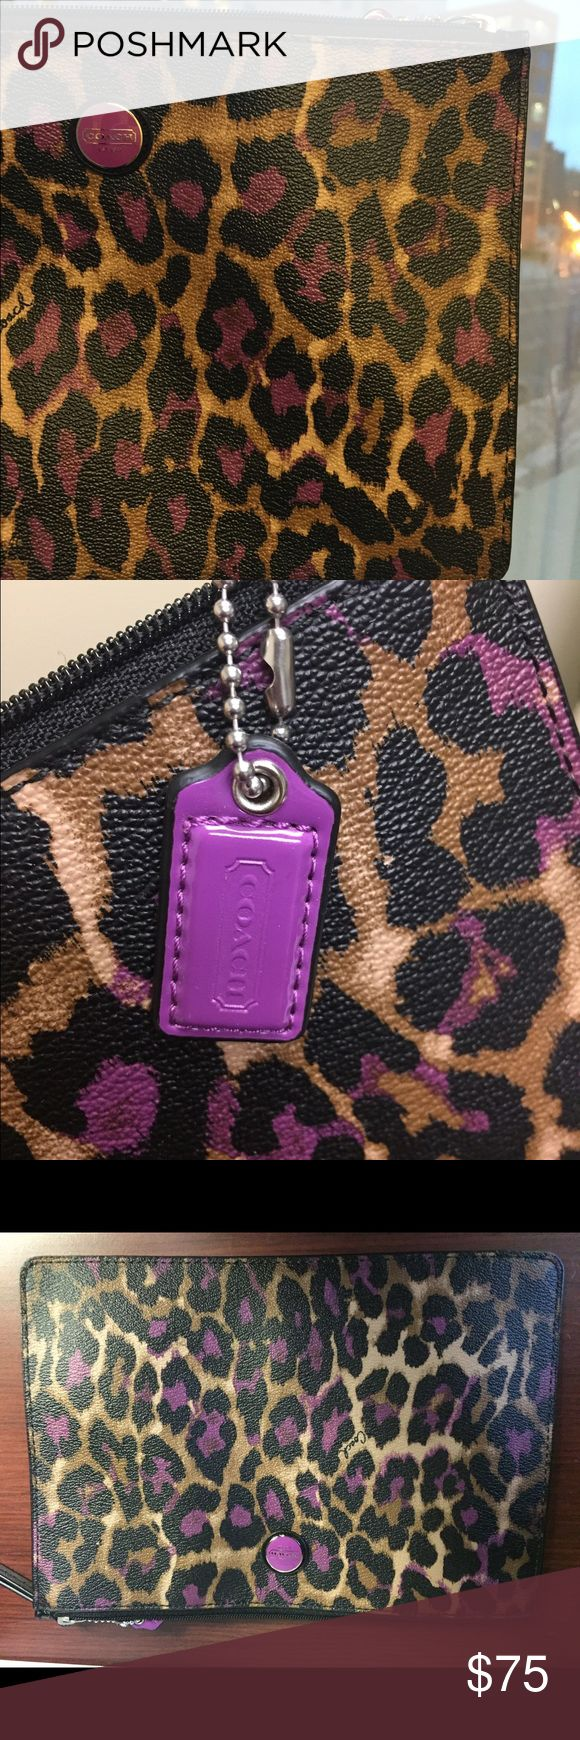 Brand new Coach clutch leopard cheetah with purple 100% authentic Coach clutch in leopard print with fun purple details and zipper closure! Great for traveling or carrying on a night out! Never carried and zero wear and tear. The inside is black with a pocket. Coach Bags Clutches & Wristlets